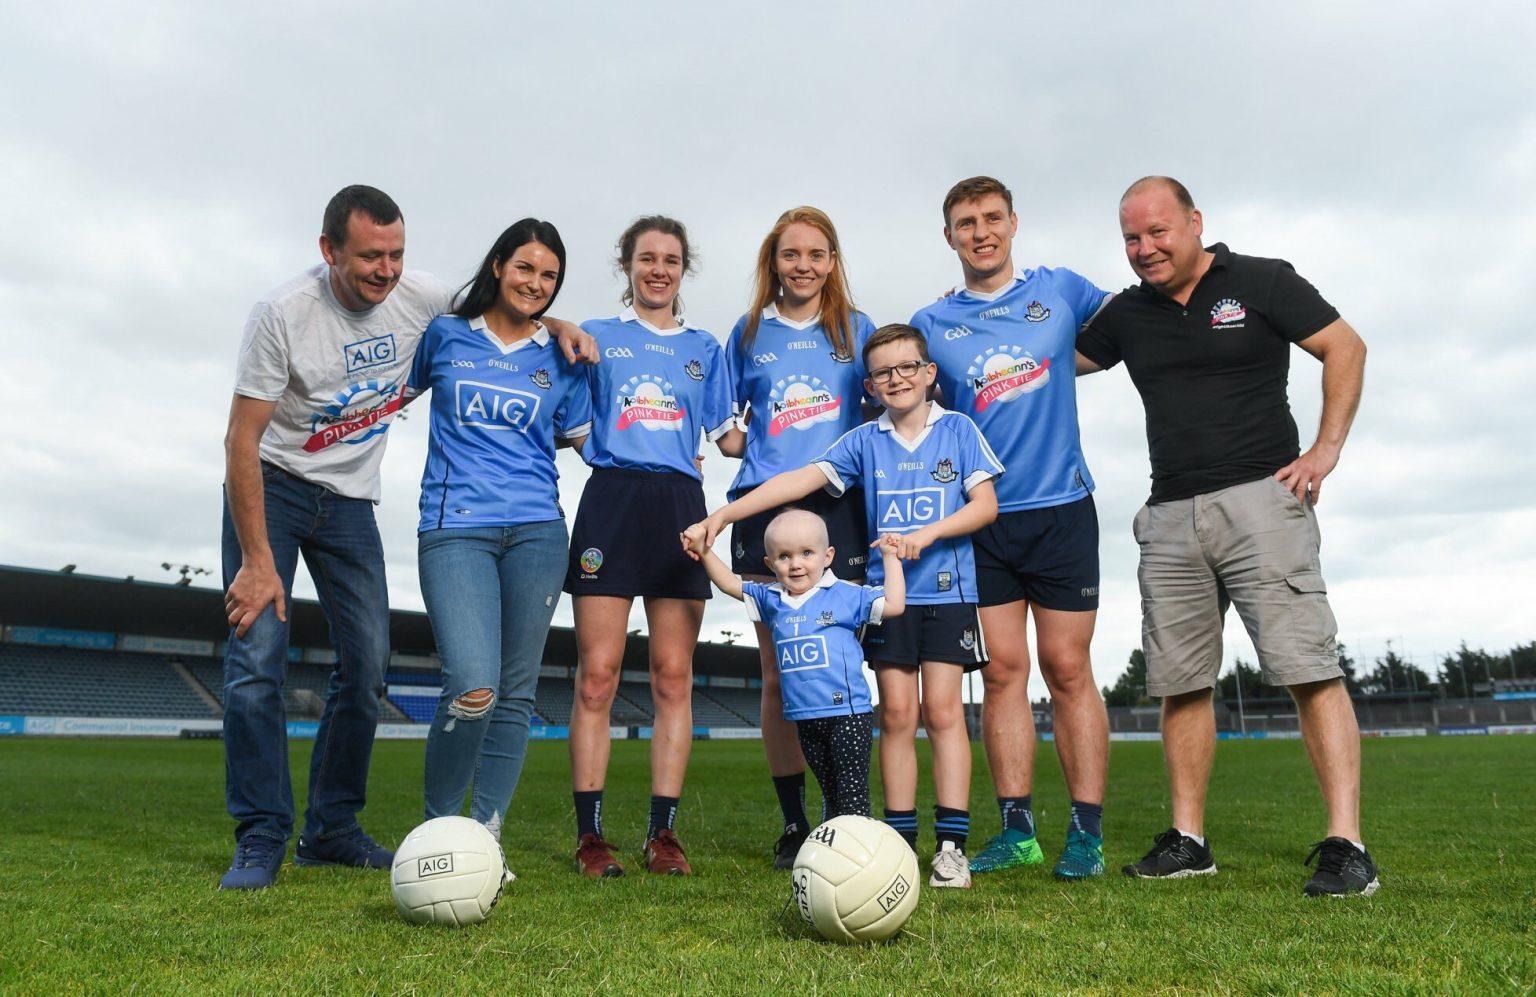 A Dublin Men's and Ladies football player and camogie player pose for a photo in Parnell Park with members of Aoibheann's Pink Tie Charity for the announcement that Dublin sponsors AIG will be giving up the advertisement space on the Dublin jersey for the charity for the teams upcoming games